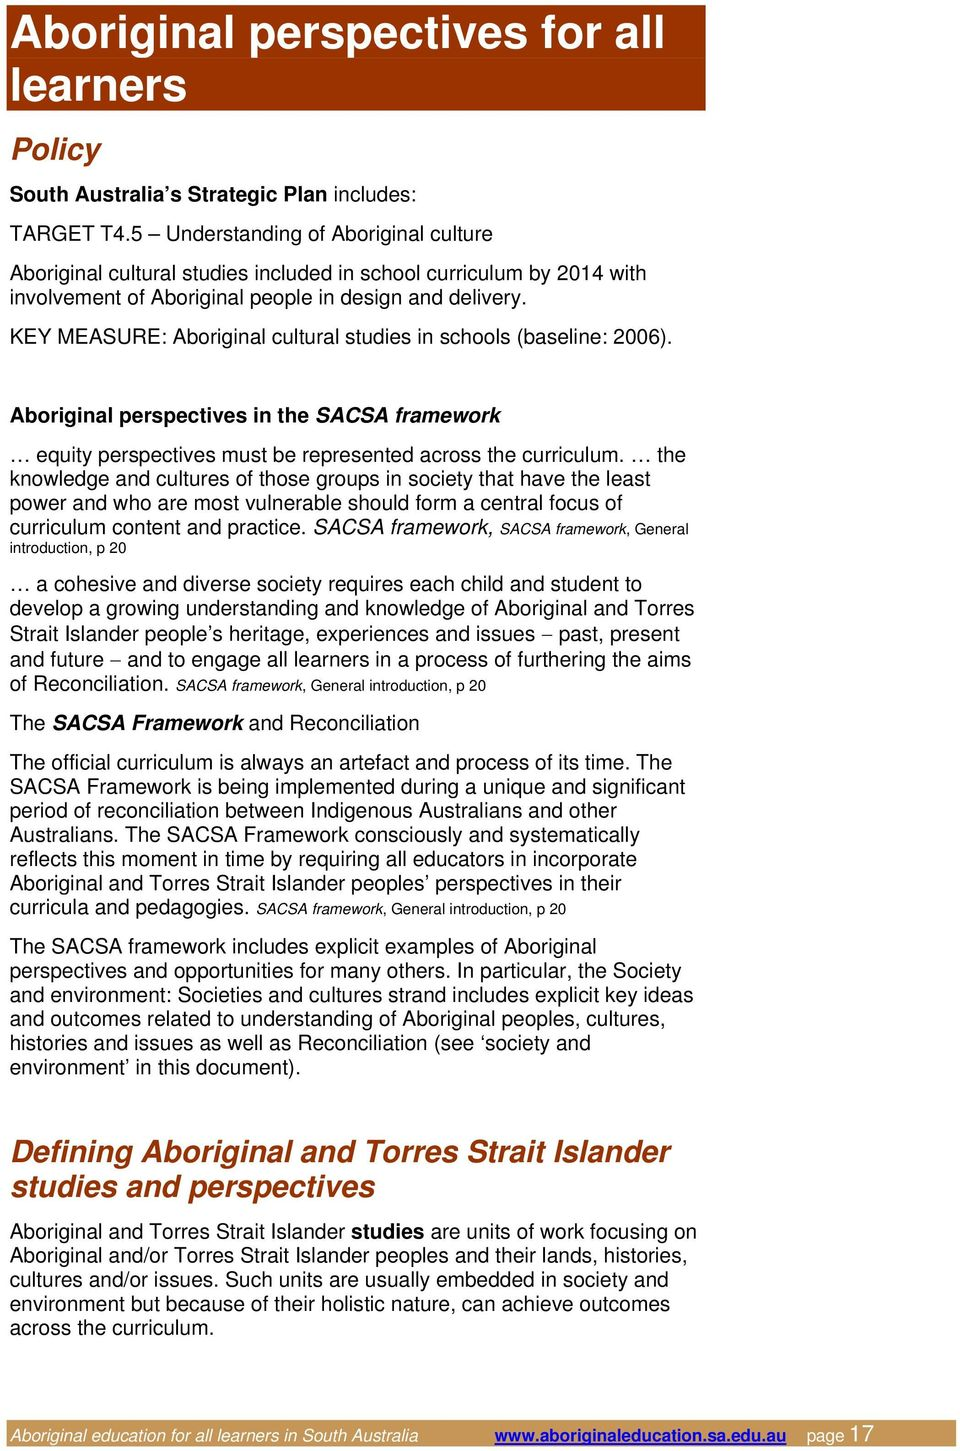 KEY MEASURE: Aboriginal cultural studies in schools (baseline: 2006). Aboriginal perspectives in the SACSA framework equity perspectives must be represented across the curriculum.